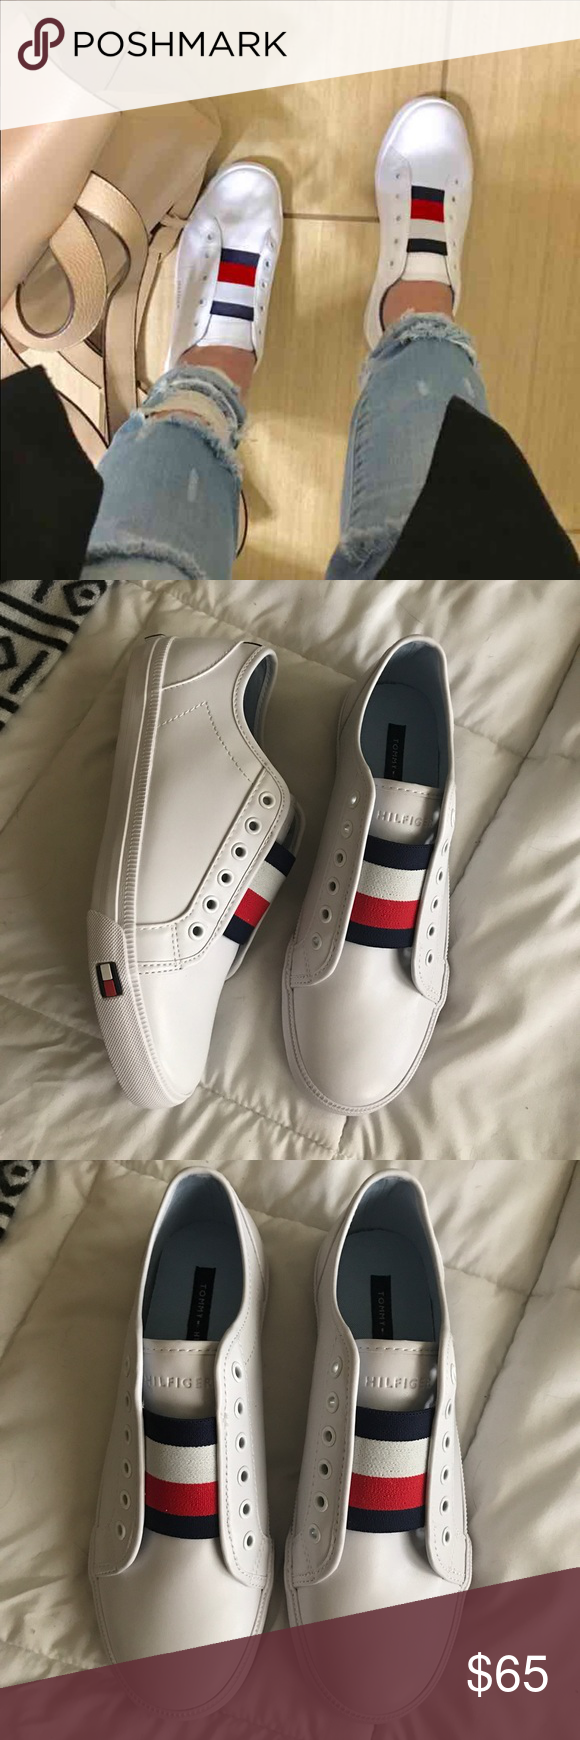 6888e976c96 Ew Tommy Hilfiger sneakers New never worn stylish Tommy Hilfiger sneakers  size 8. PRICE IS FIRM. Free gift with purchase Tommy Hilfiger Shoes Sneakers